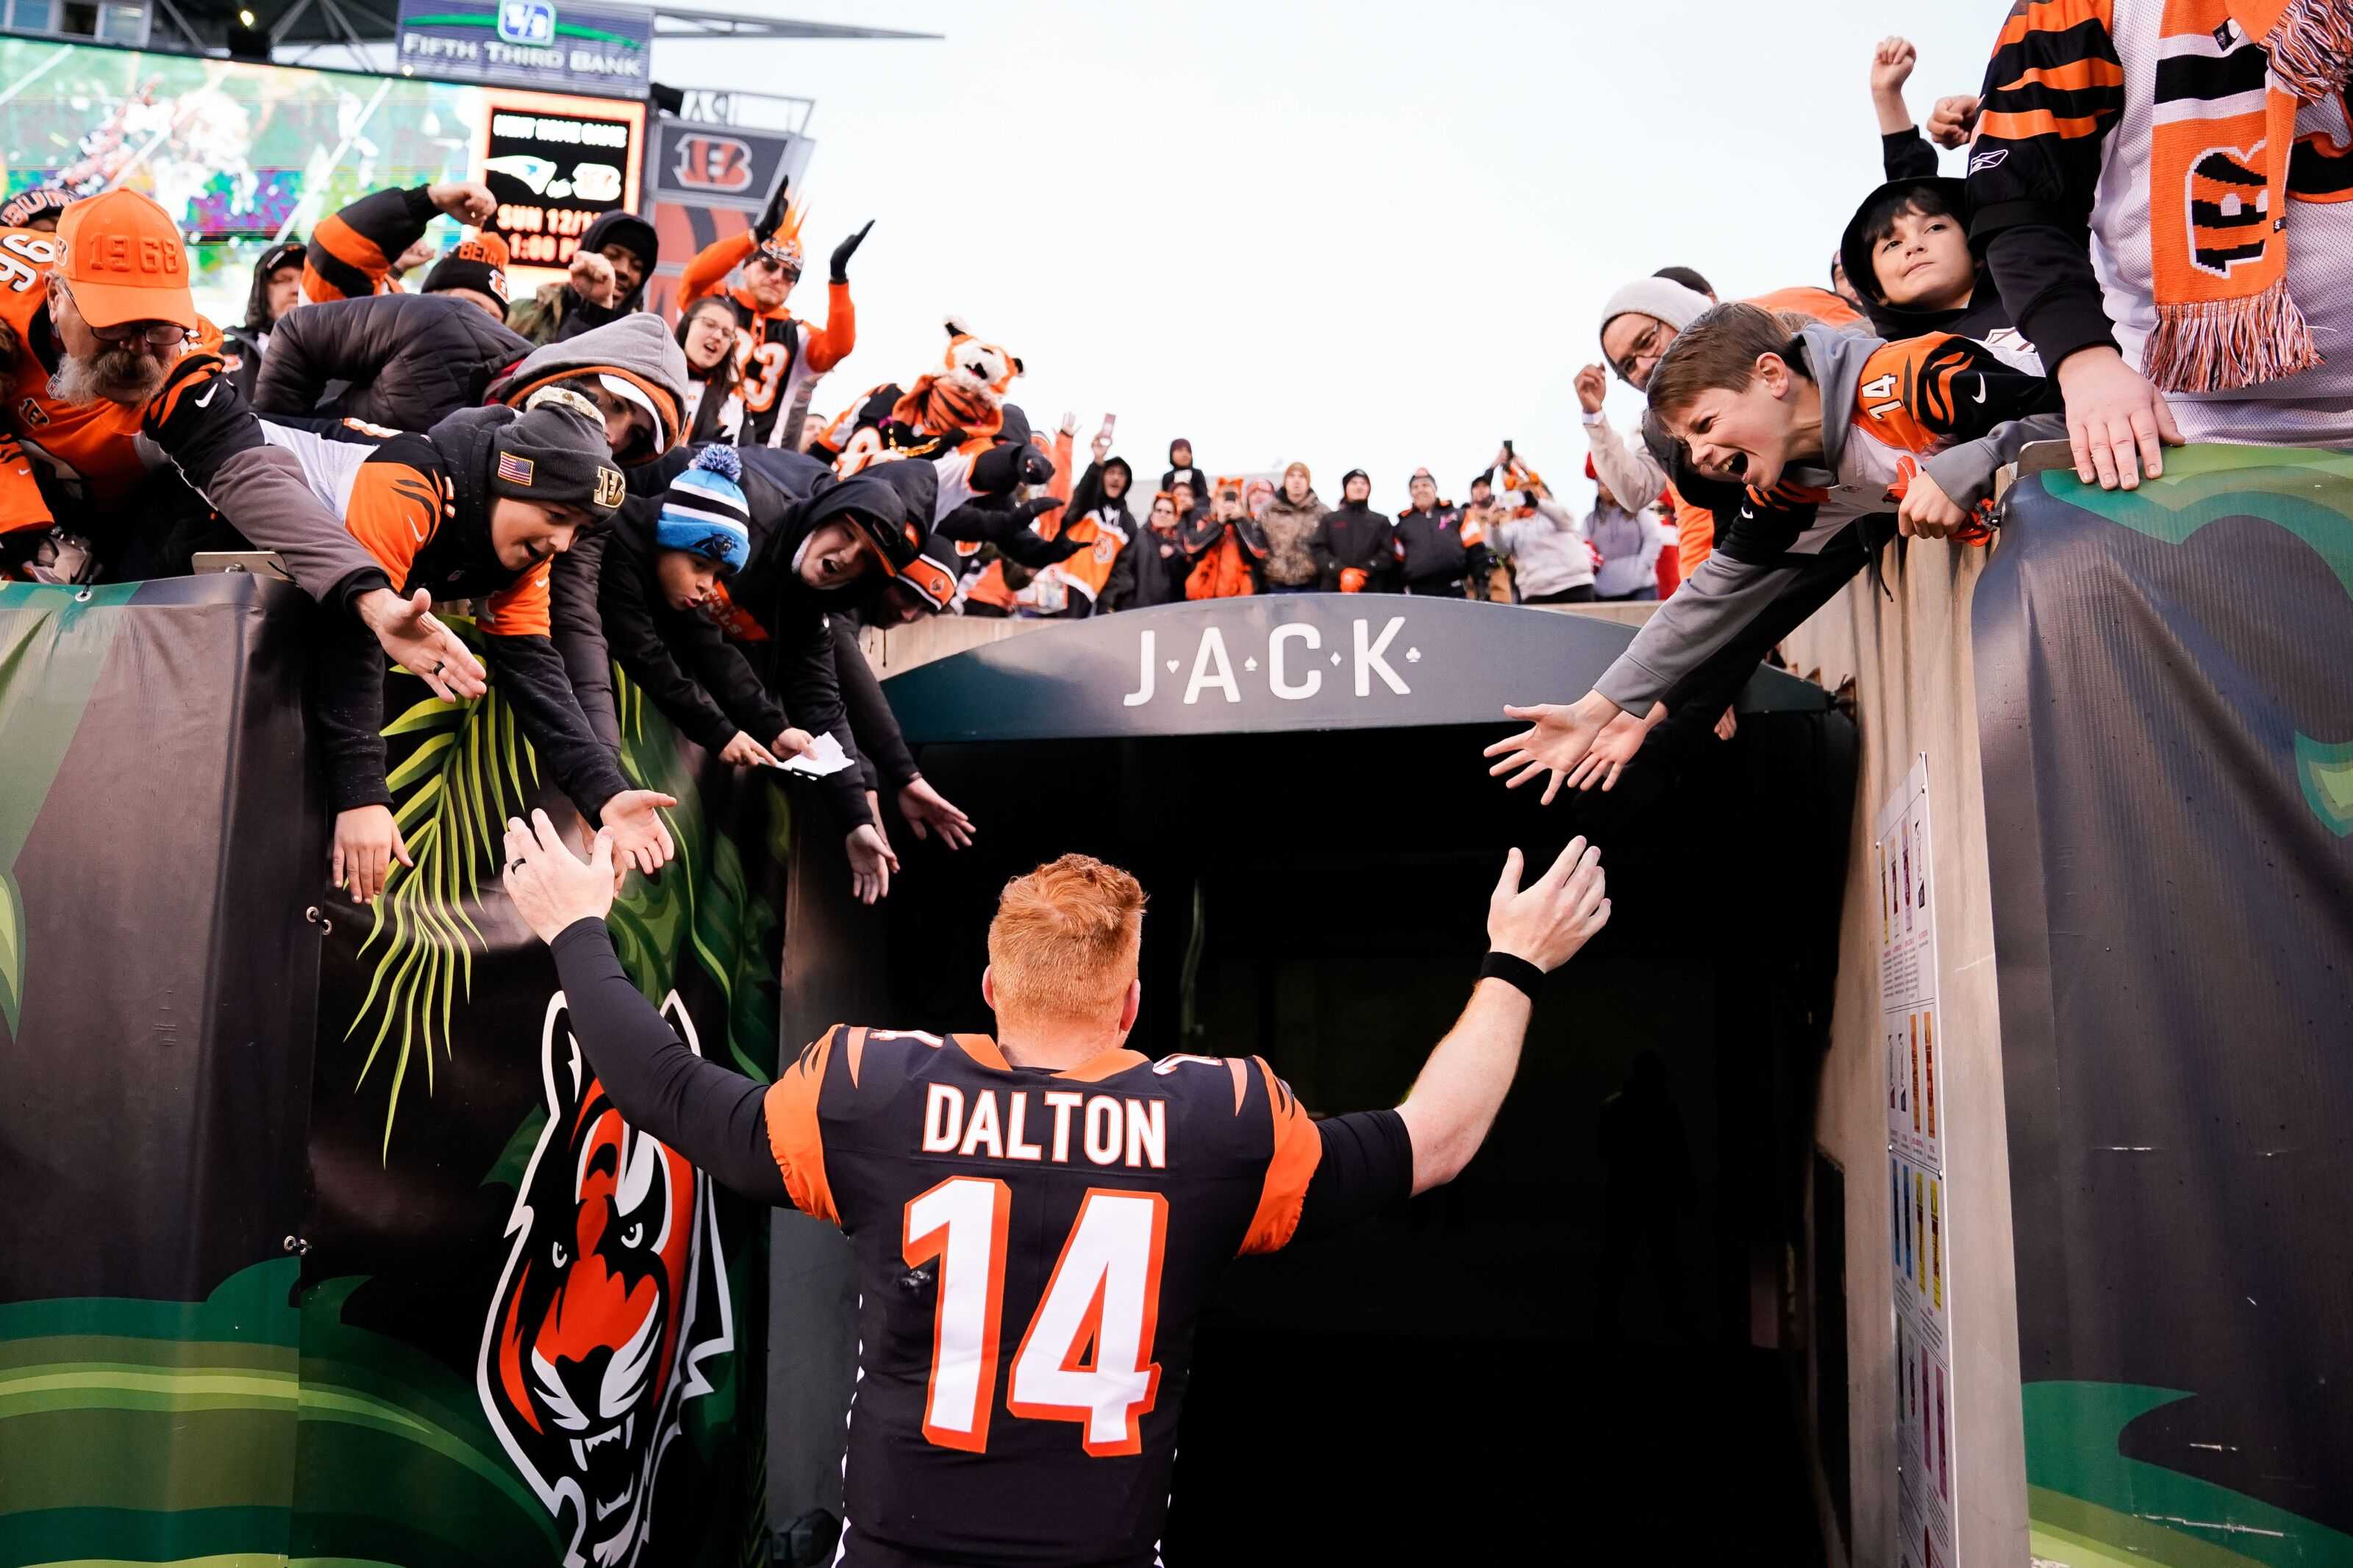 Andy Dalton would still have value with Bengals in 2020